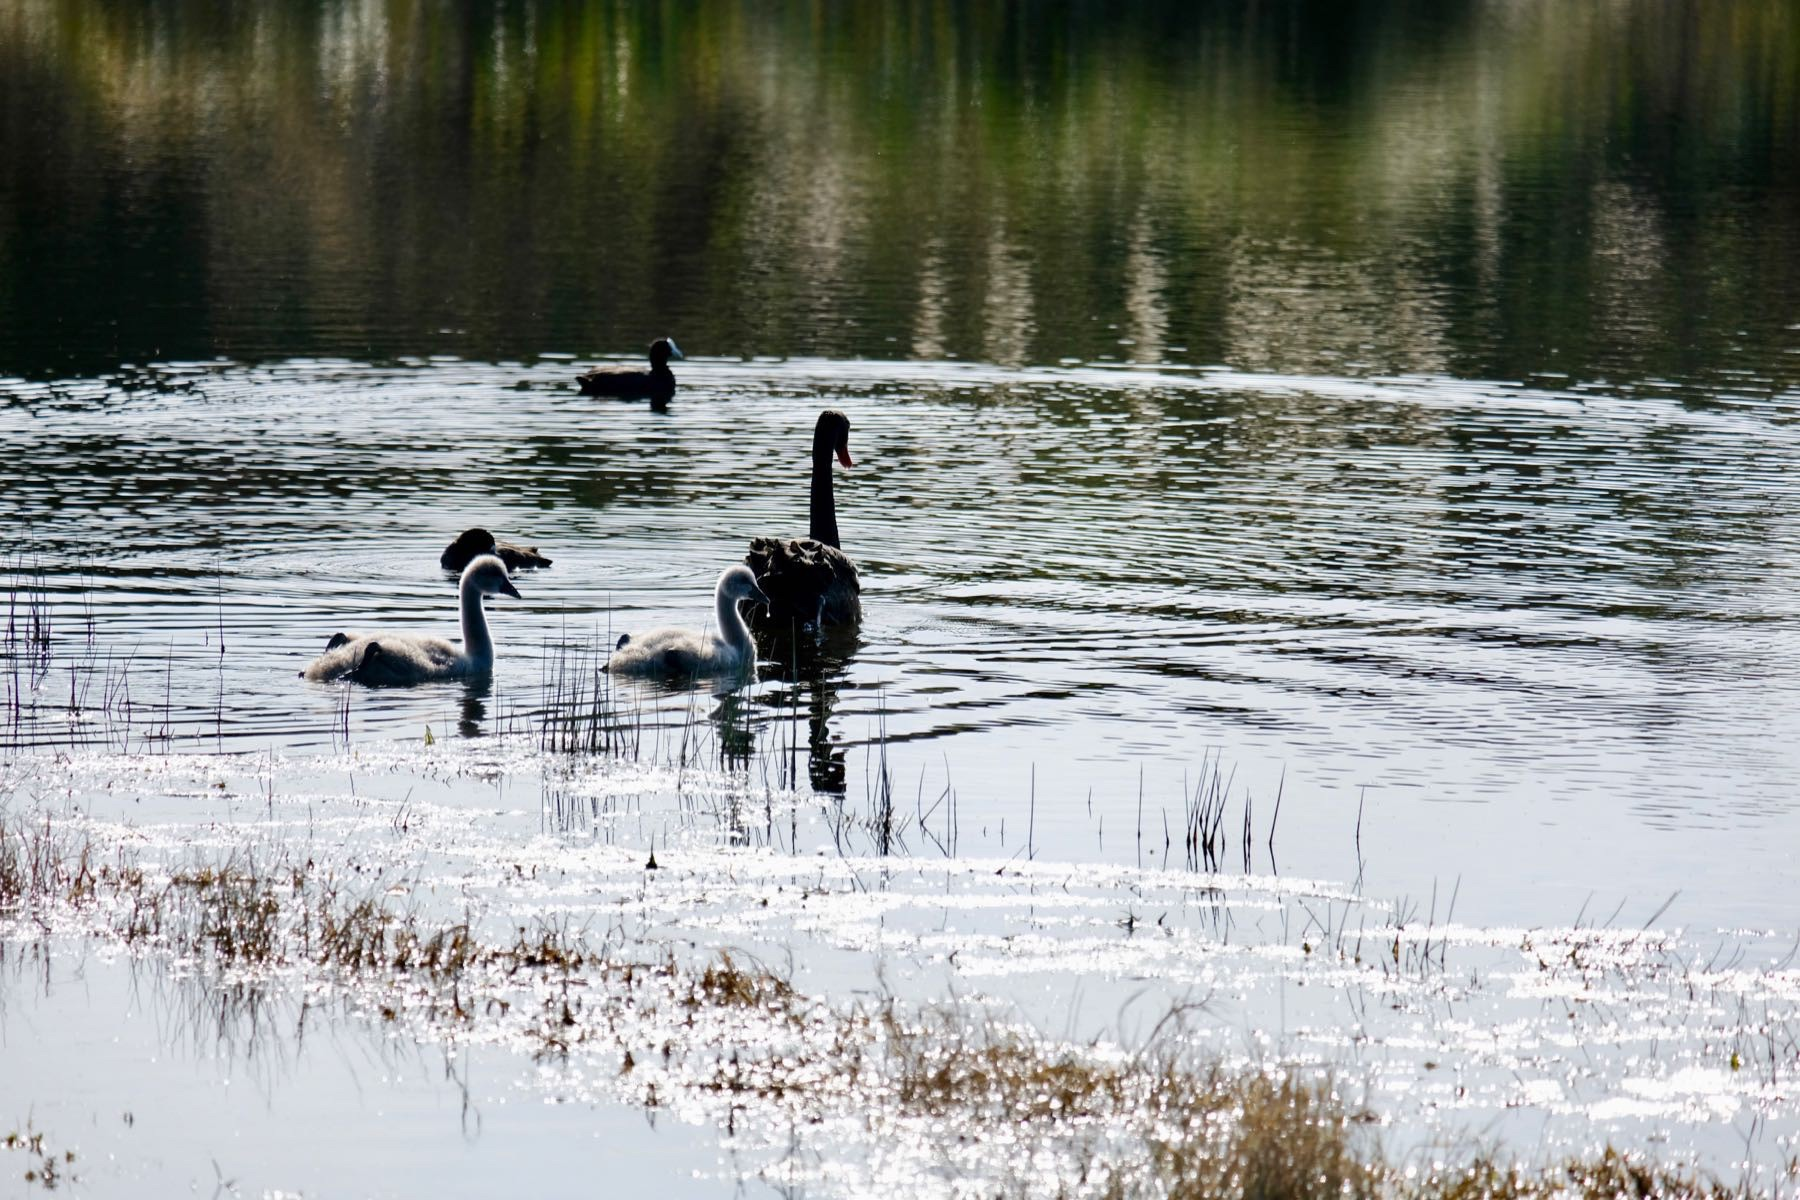 Black swan and two grey cygnets, swimming on a small lake, with ducks in the background.